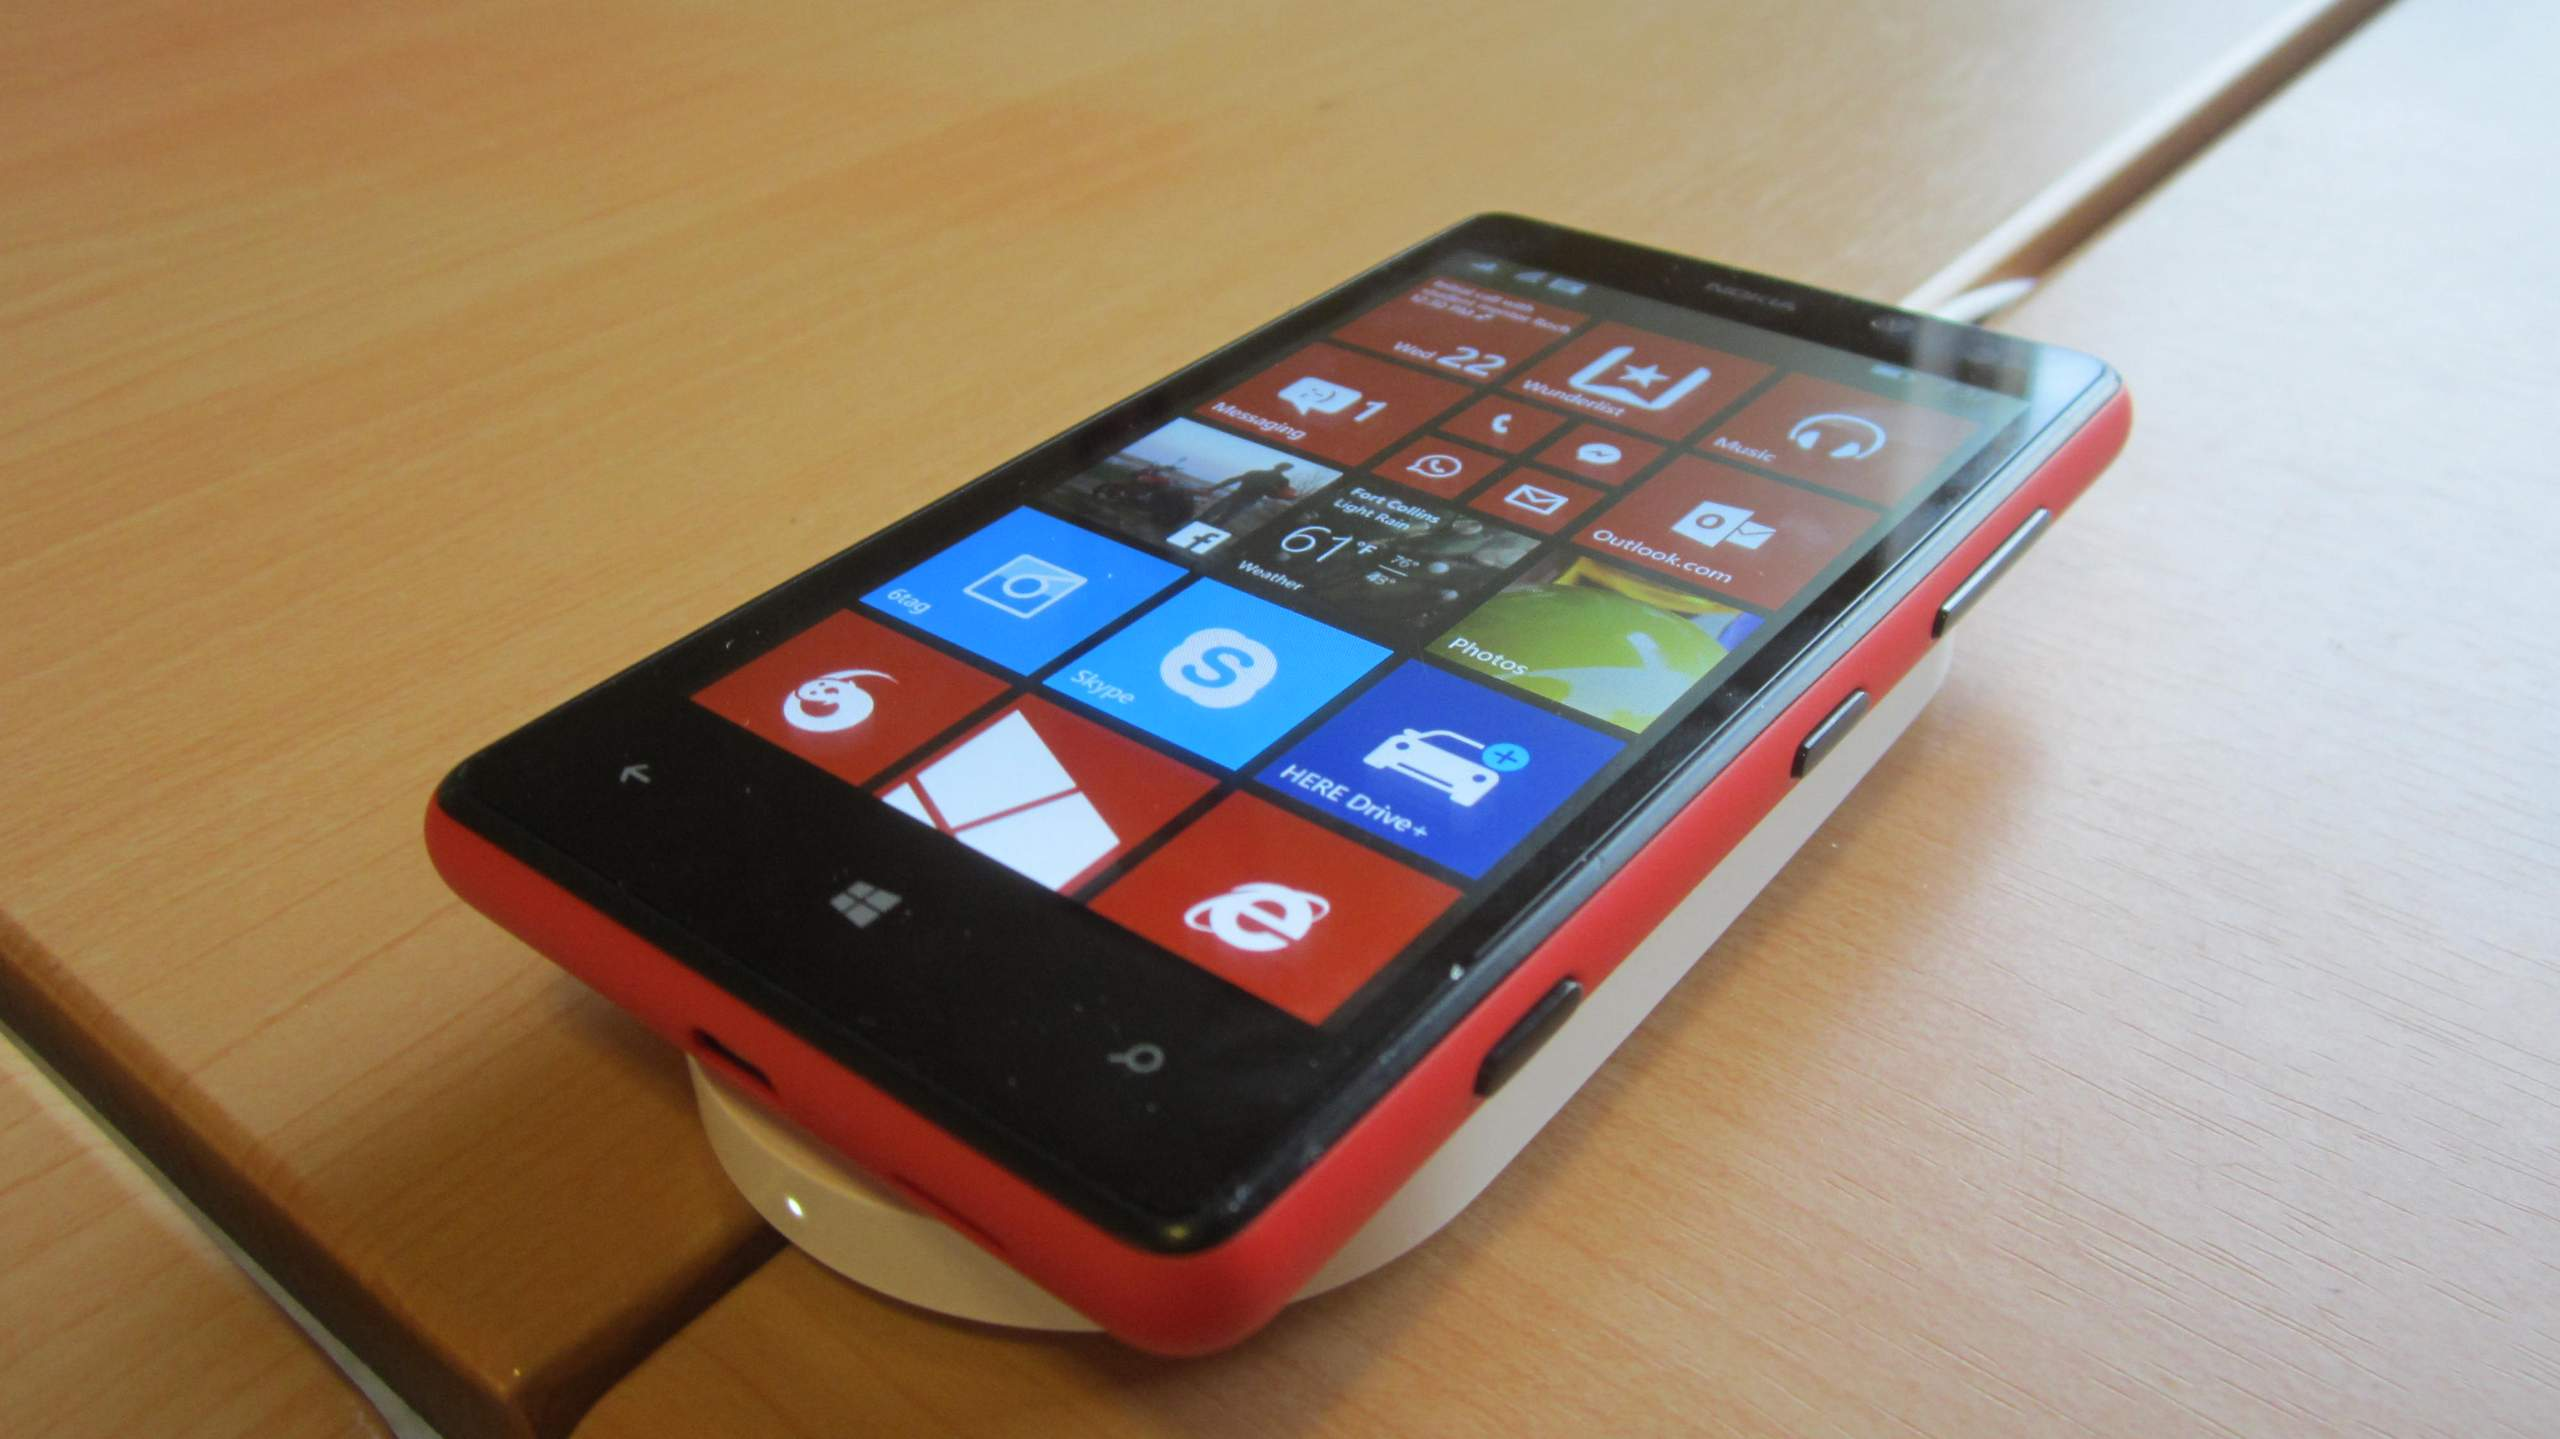 My Nokia Lumia 820 with a new red Qi charging cover on top of a white Nokia DT-900 charging pad.